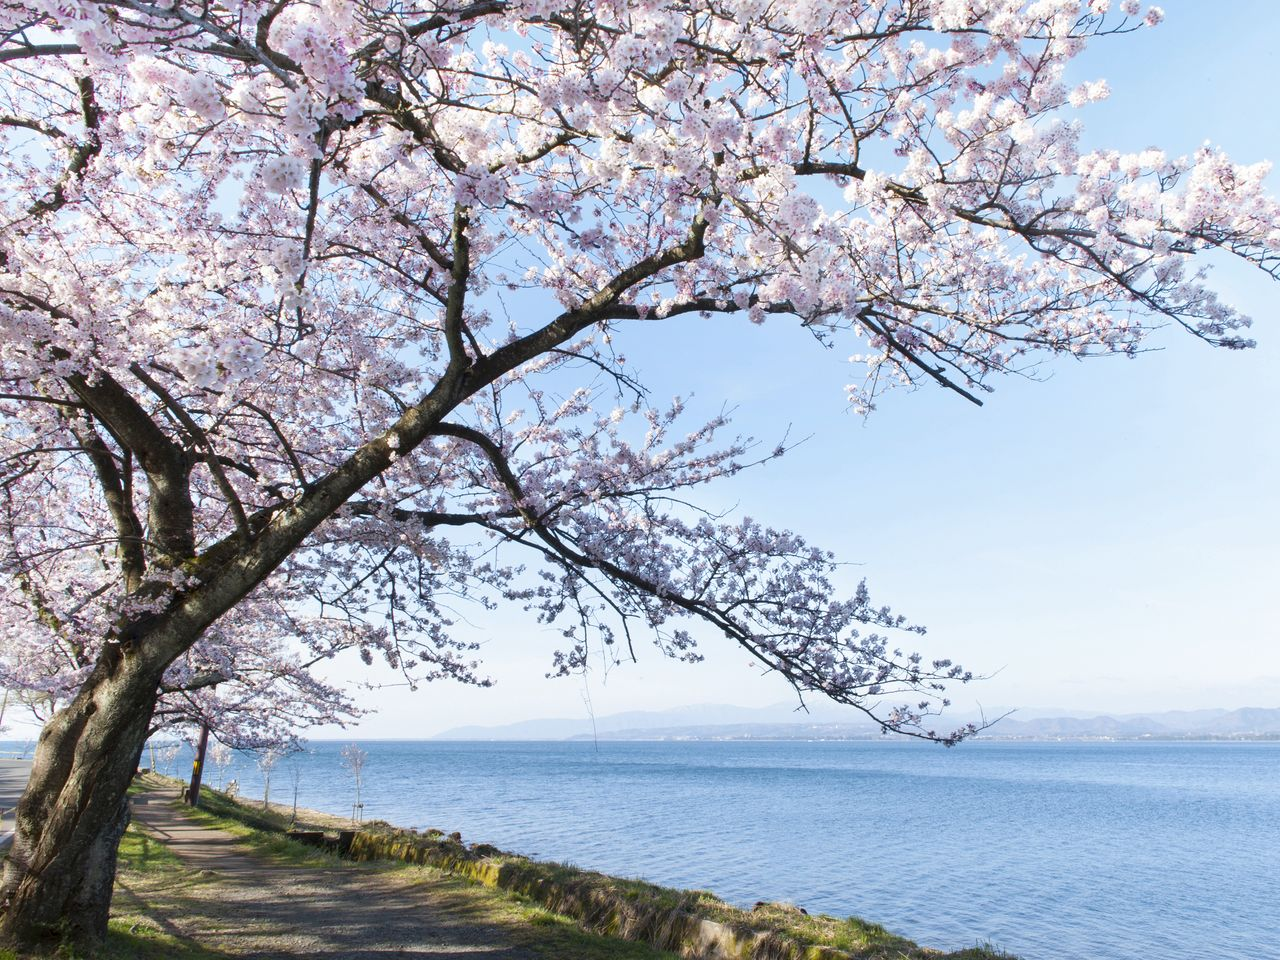 Pale flowers offer a pleasing contrast to the blue skies and waters of Lake Biwa.